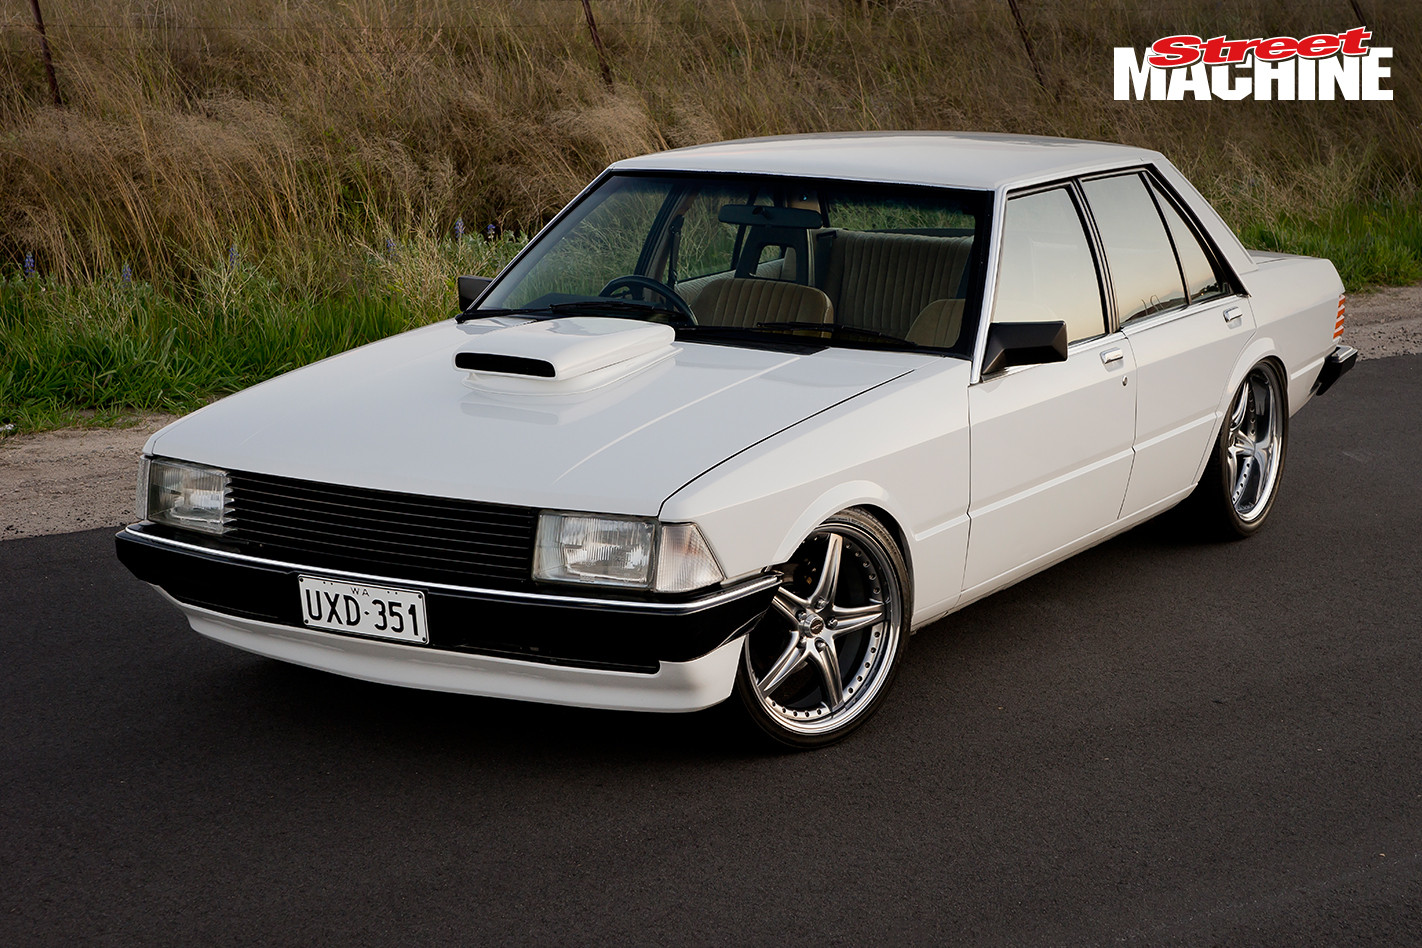 Ford XD Fairmont Ghia 351 4